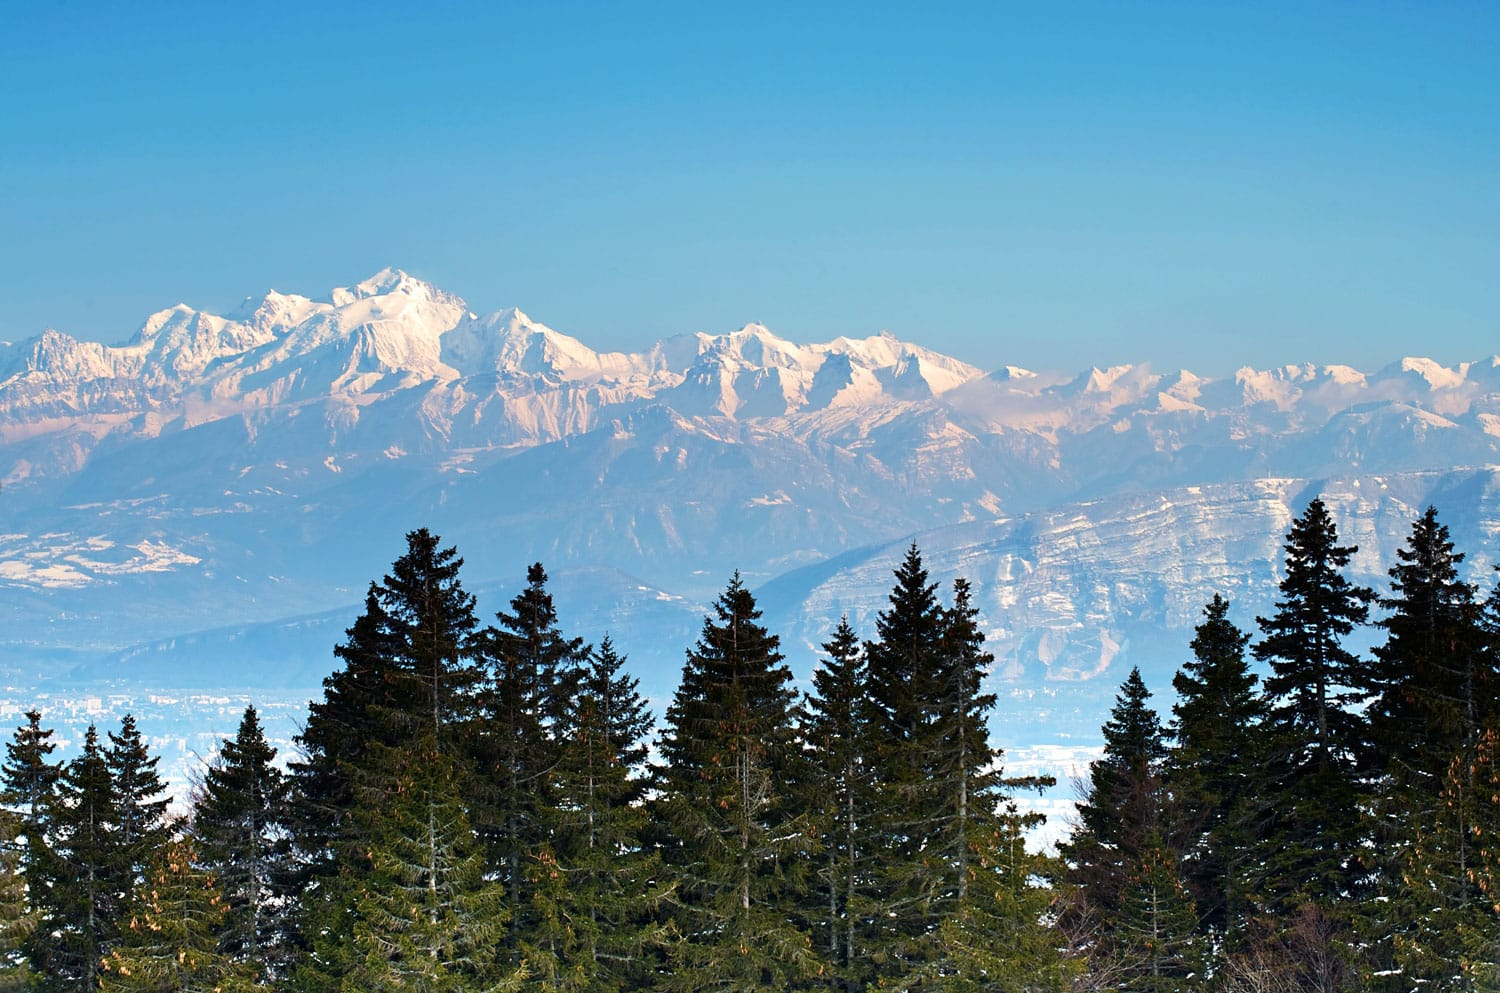 The Mont-Blanc Massif seen from Crozet